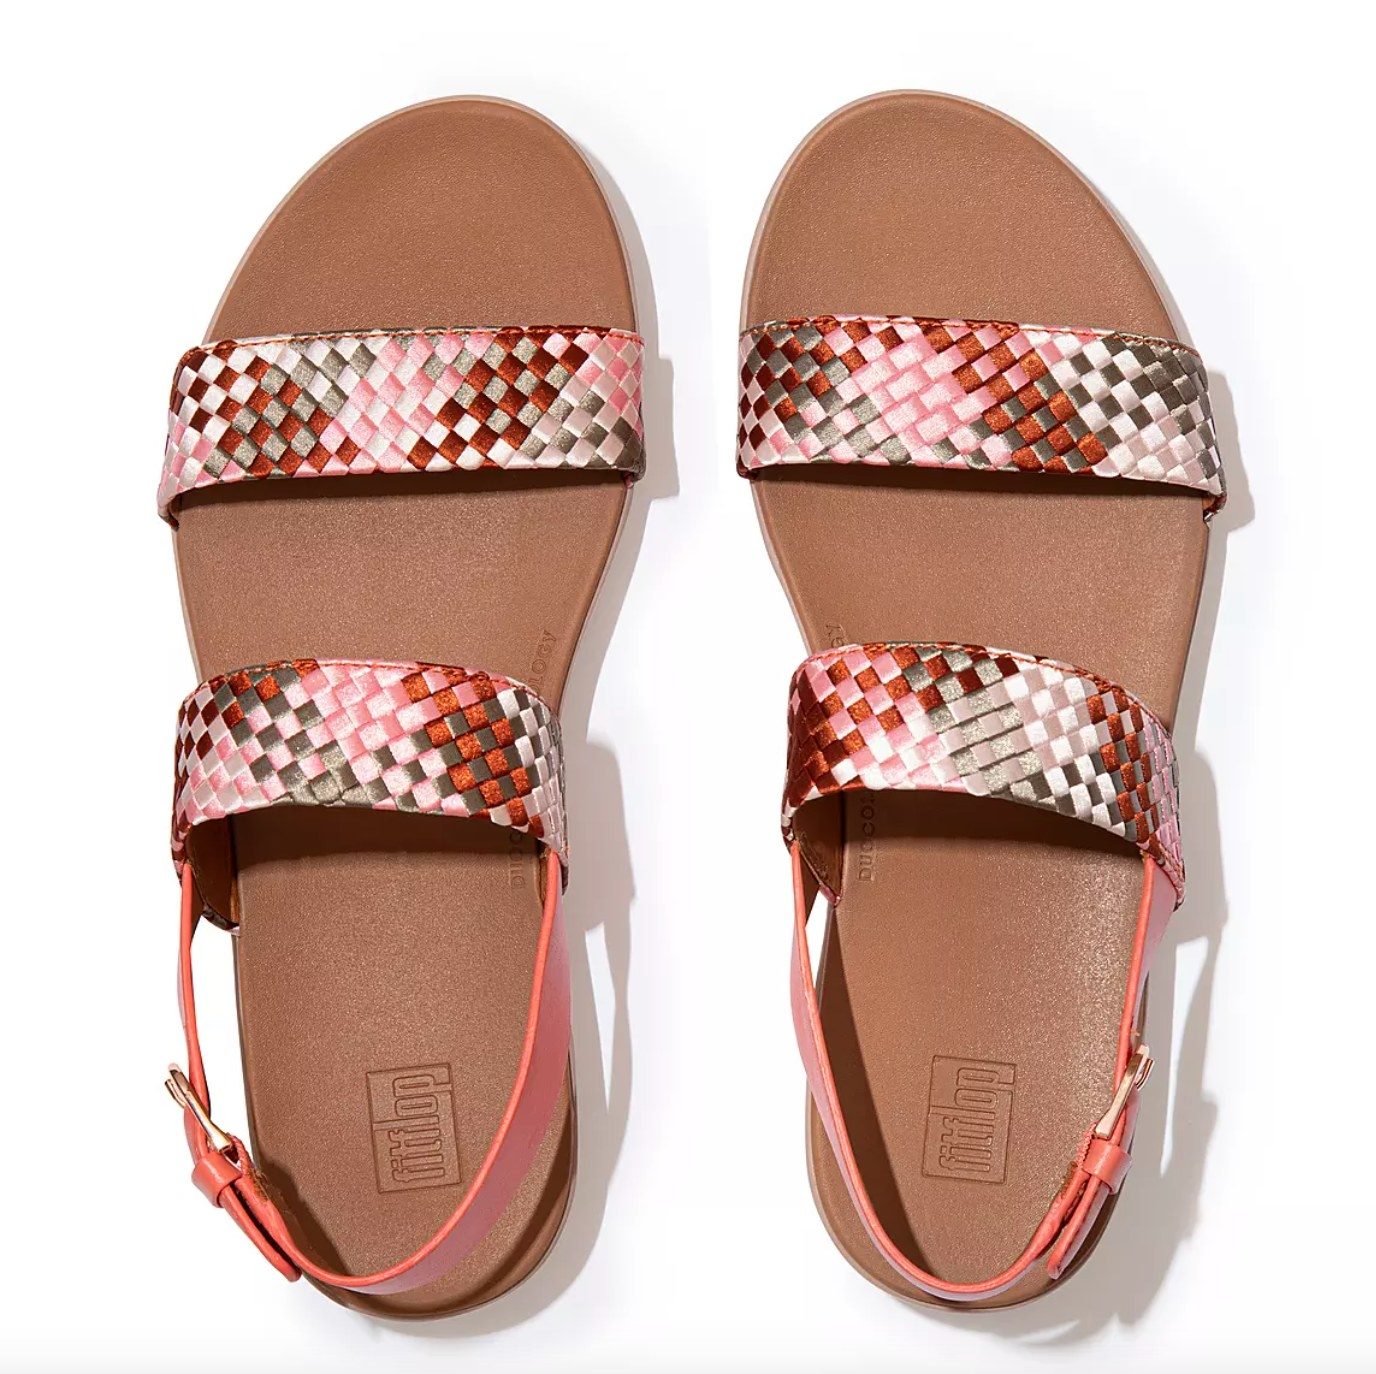 the silky-weave back strap sandal in coral pink